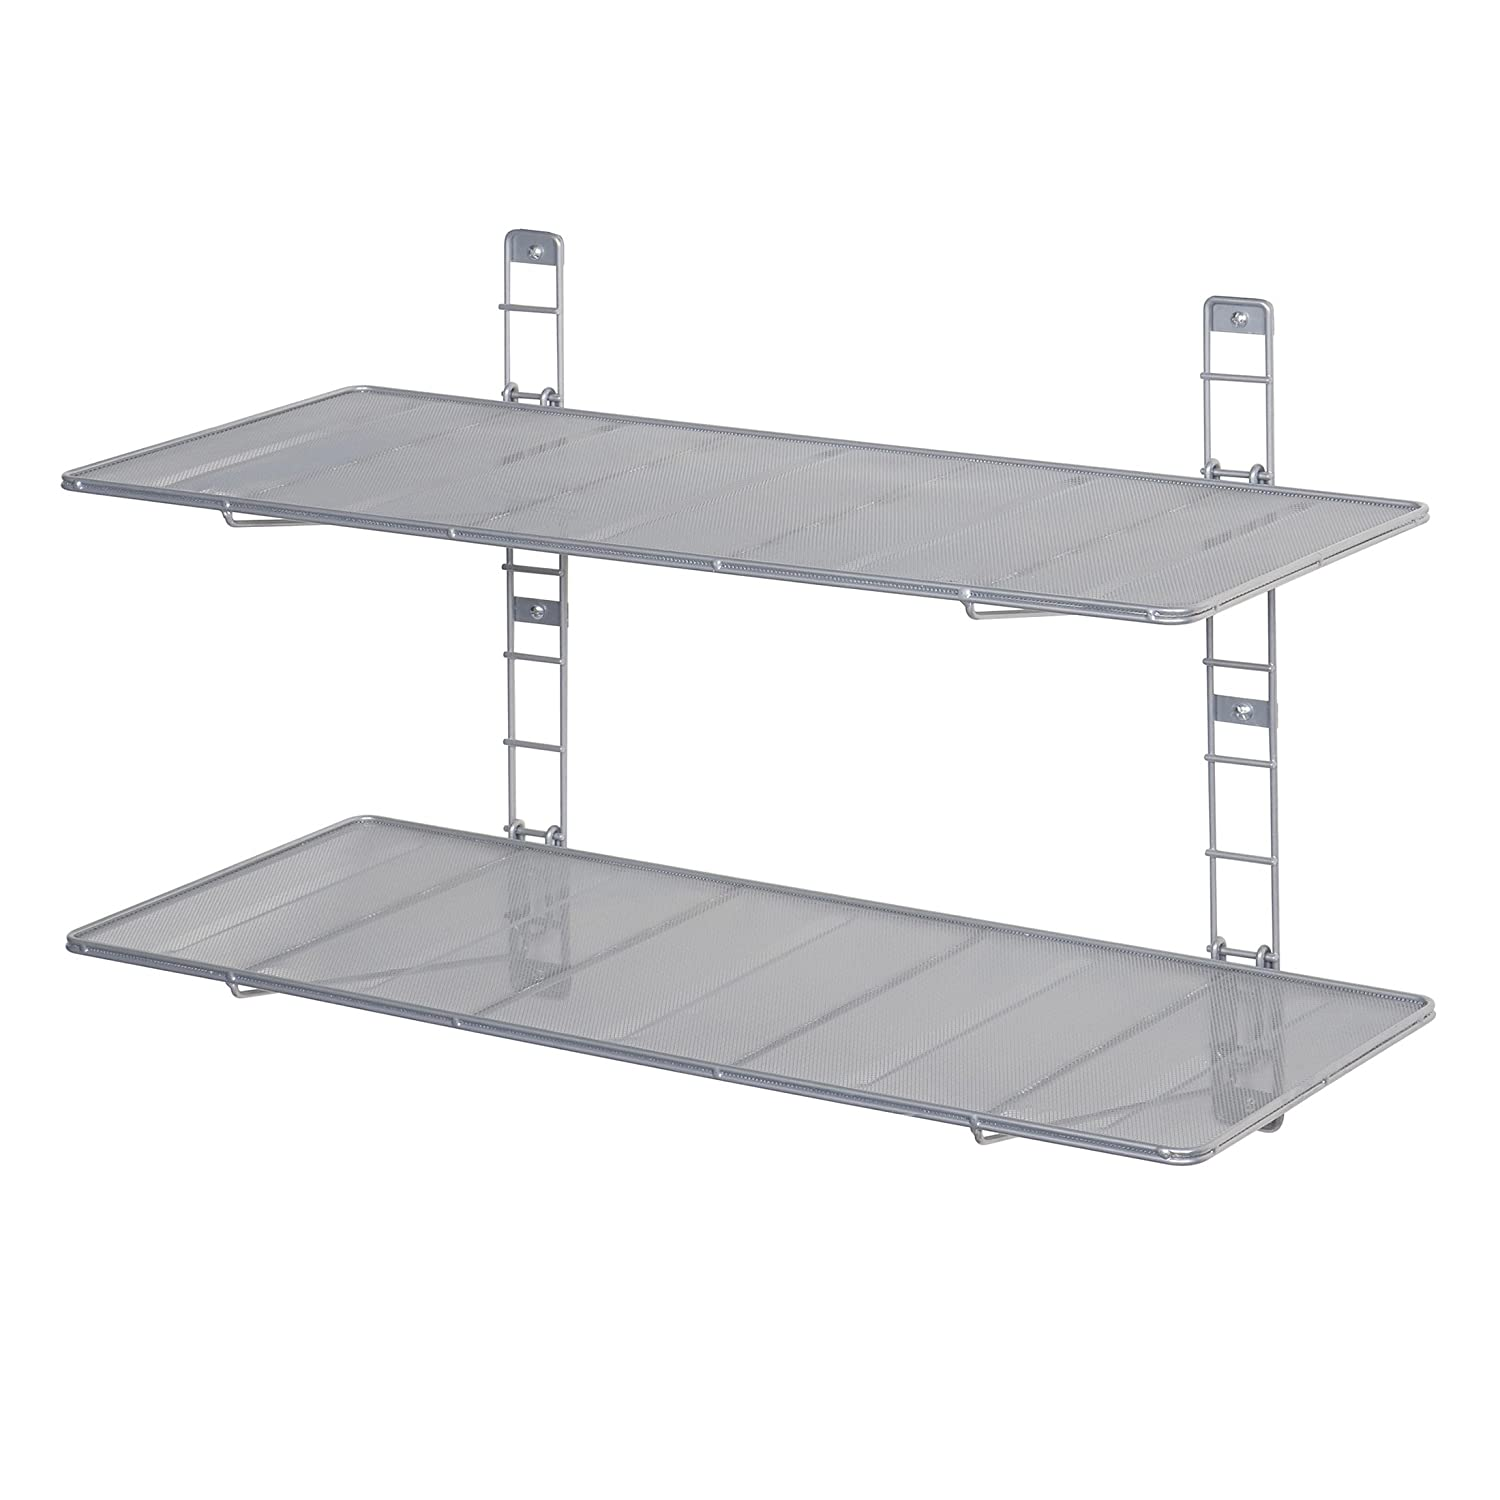 Seville Classics 2-Tier Iron Mesh Adjustable Floating Wall Shelves, 36